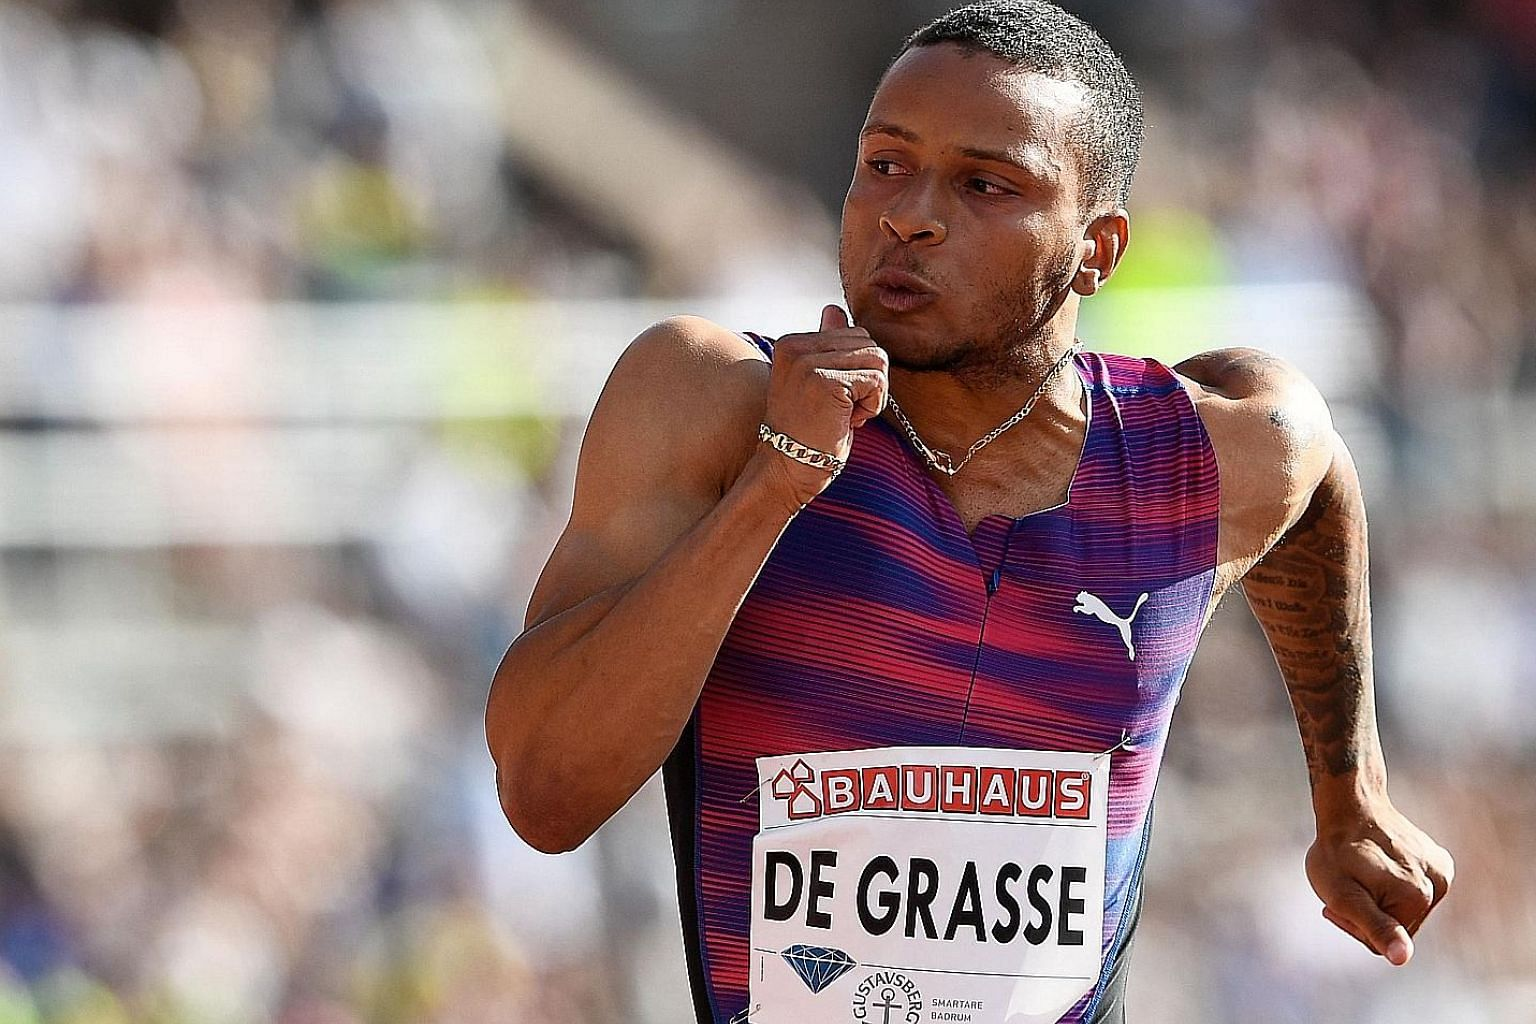 Andre de Grasse in action at the Stockholm Diamond League meet, where he set this year's fastest 100m time of 9.69 seconds.